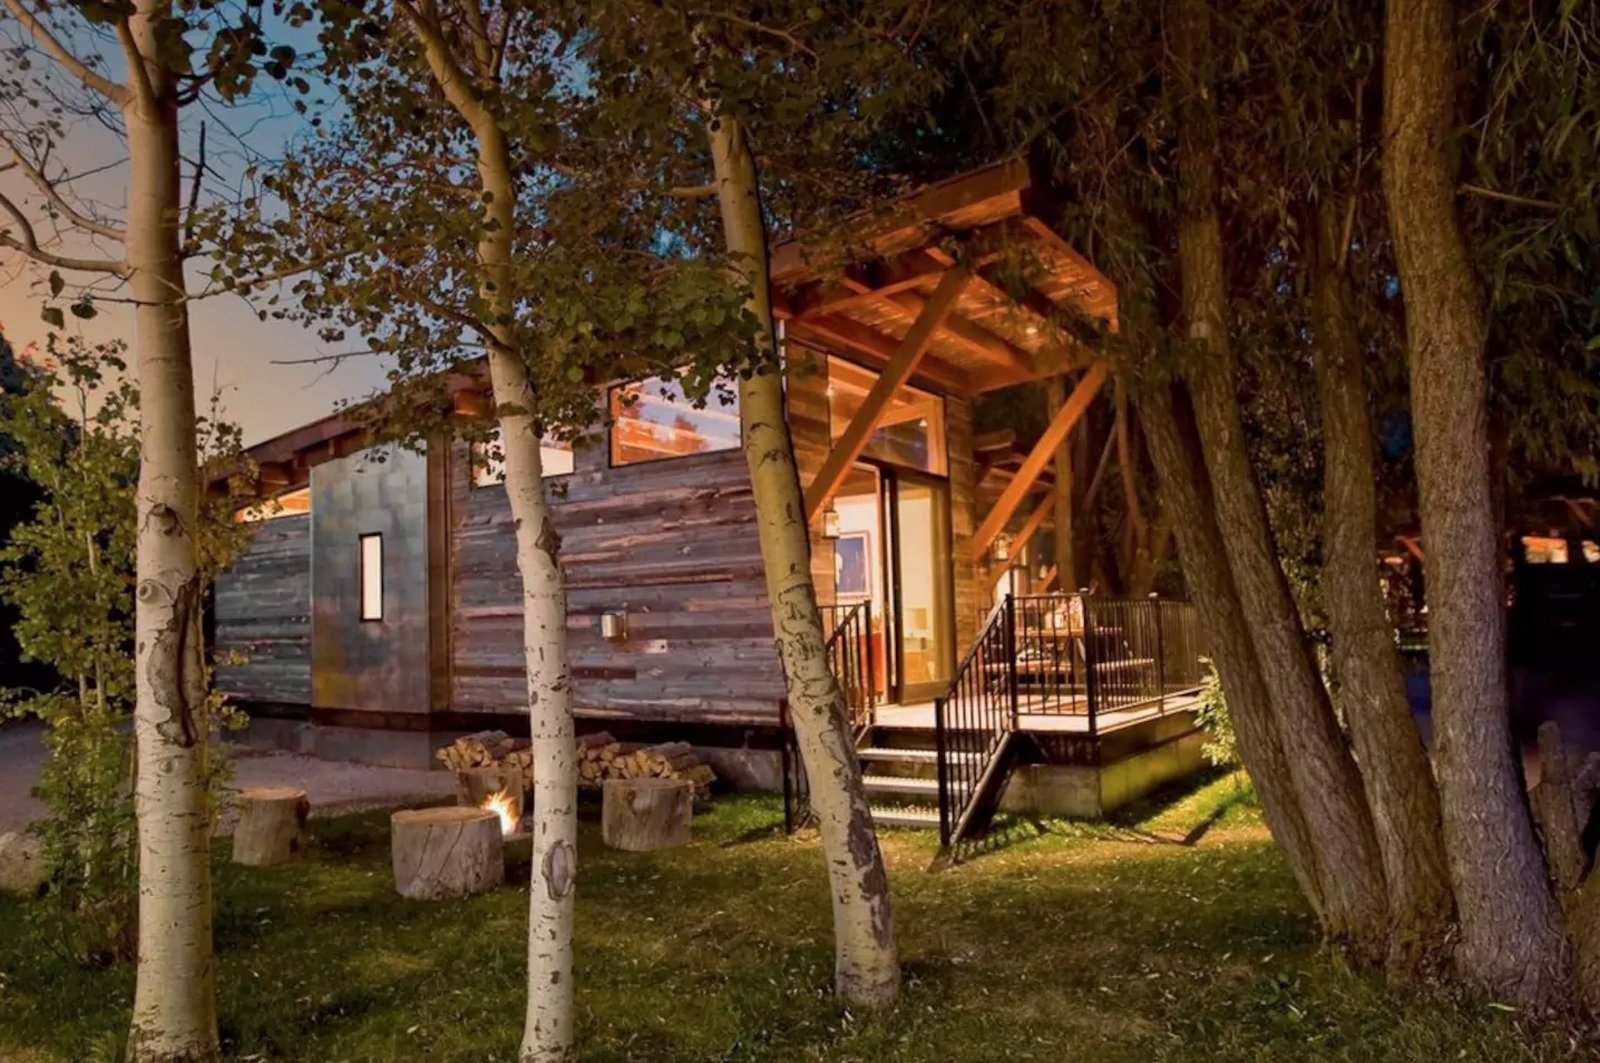 Jackson Hole Modern Rustic Cabin Wilson, WY, United States  Modern rustic luxury in the heart of Jackson Hole. Located just minutes from Jackson Hole Mountain Resort ski area and the majestic Grand Teton National Park. Only 7 miles from the Jackson Town Square. Sustainably built; LEED certified.  https://www.airbnb.com/rooms/4794644  Cabins & Hideouts from Great Airbnbs